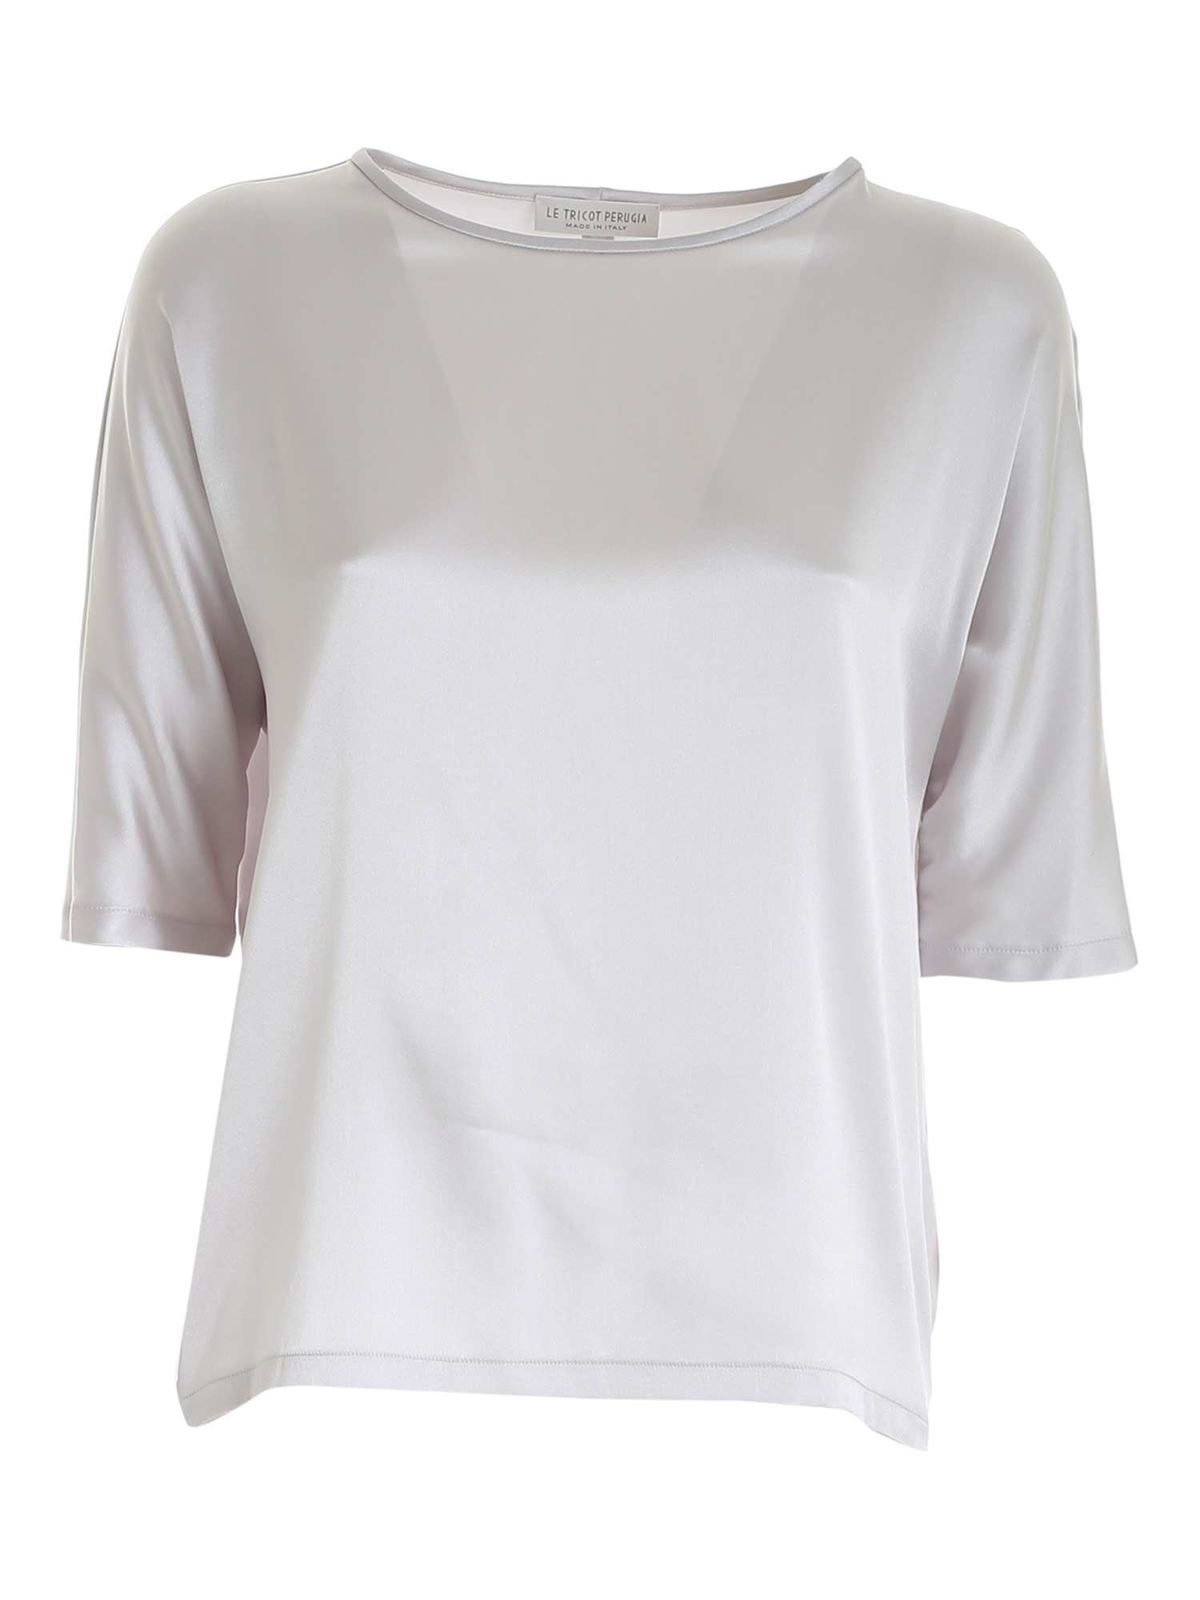 Le Tricot Perugia STRETCH SATIN BLOUSE IN PEARL GREY